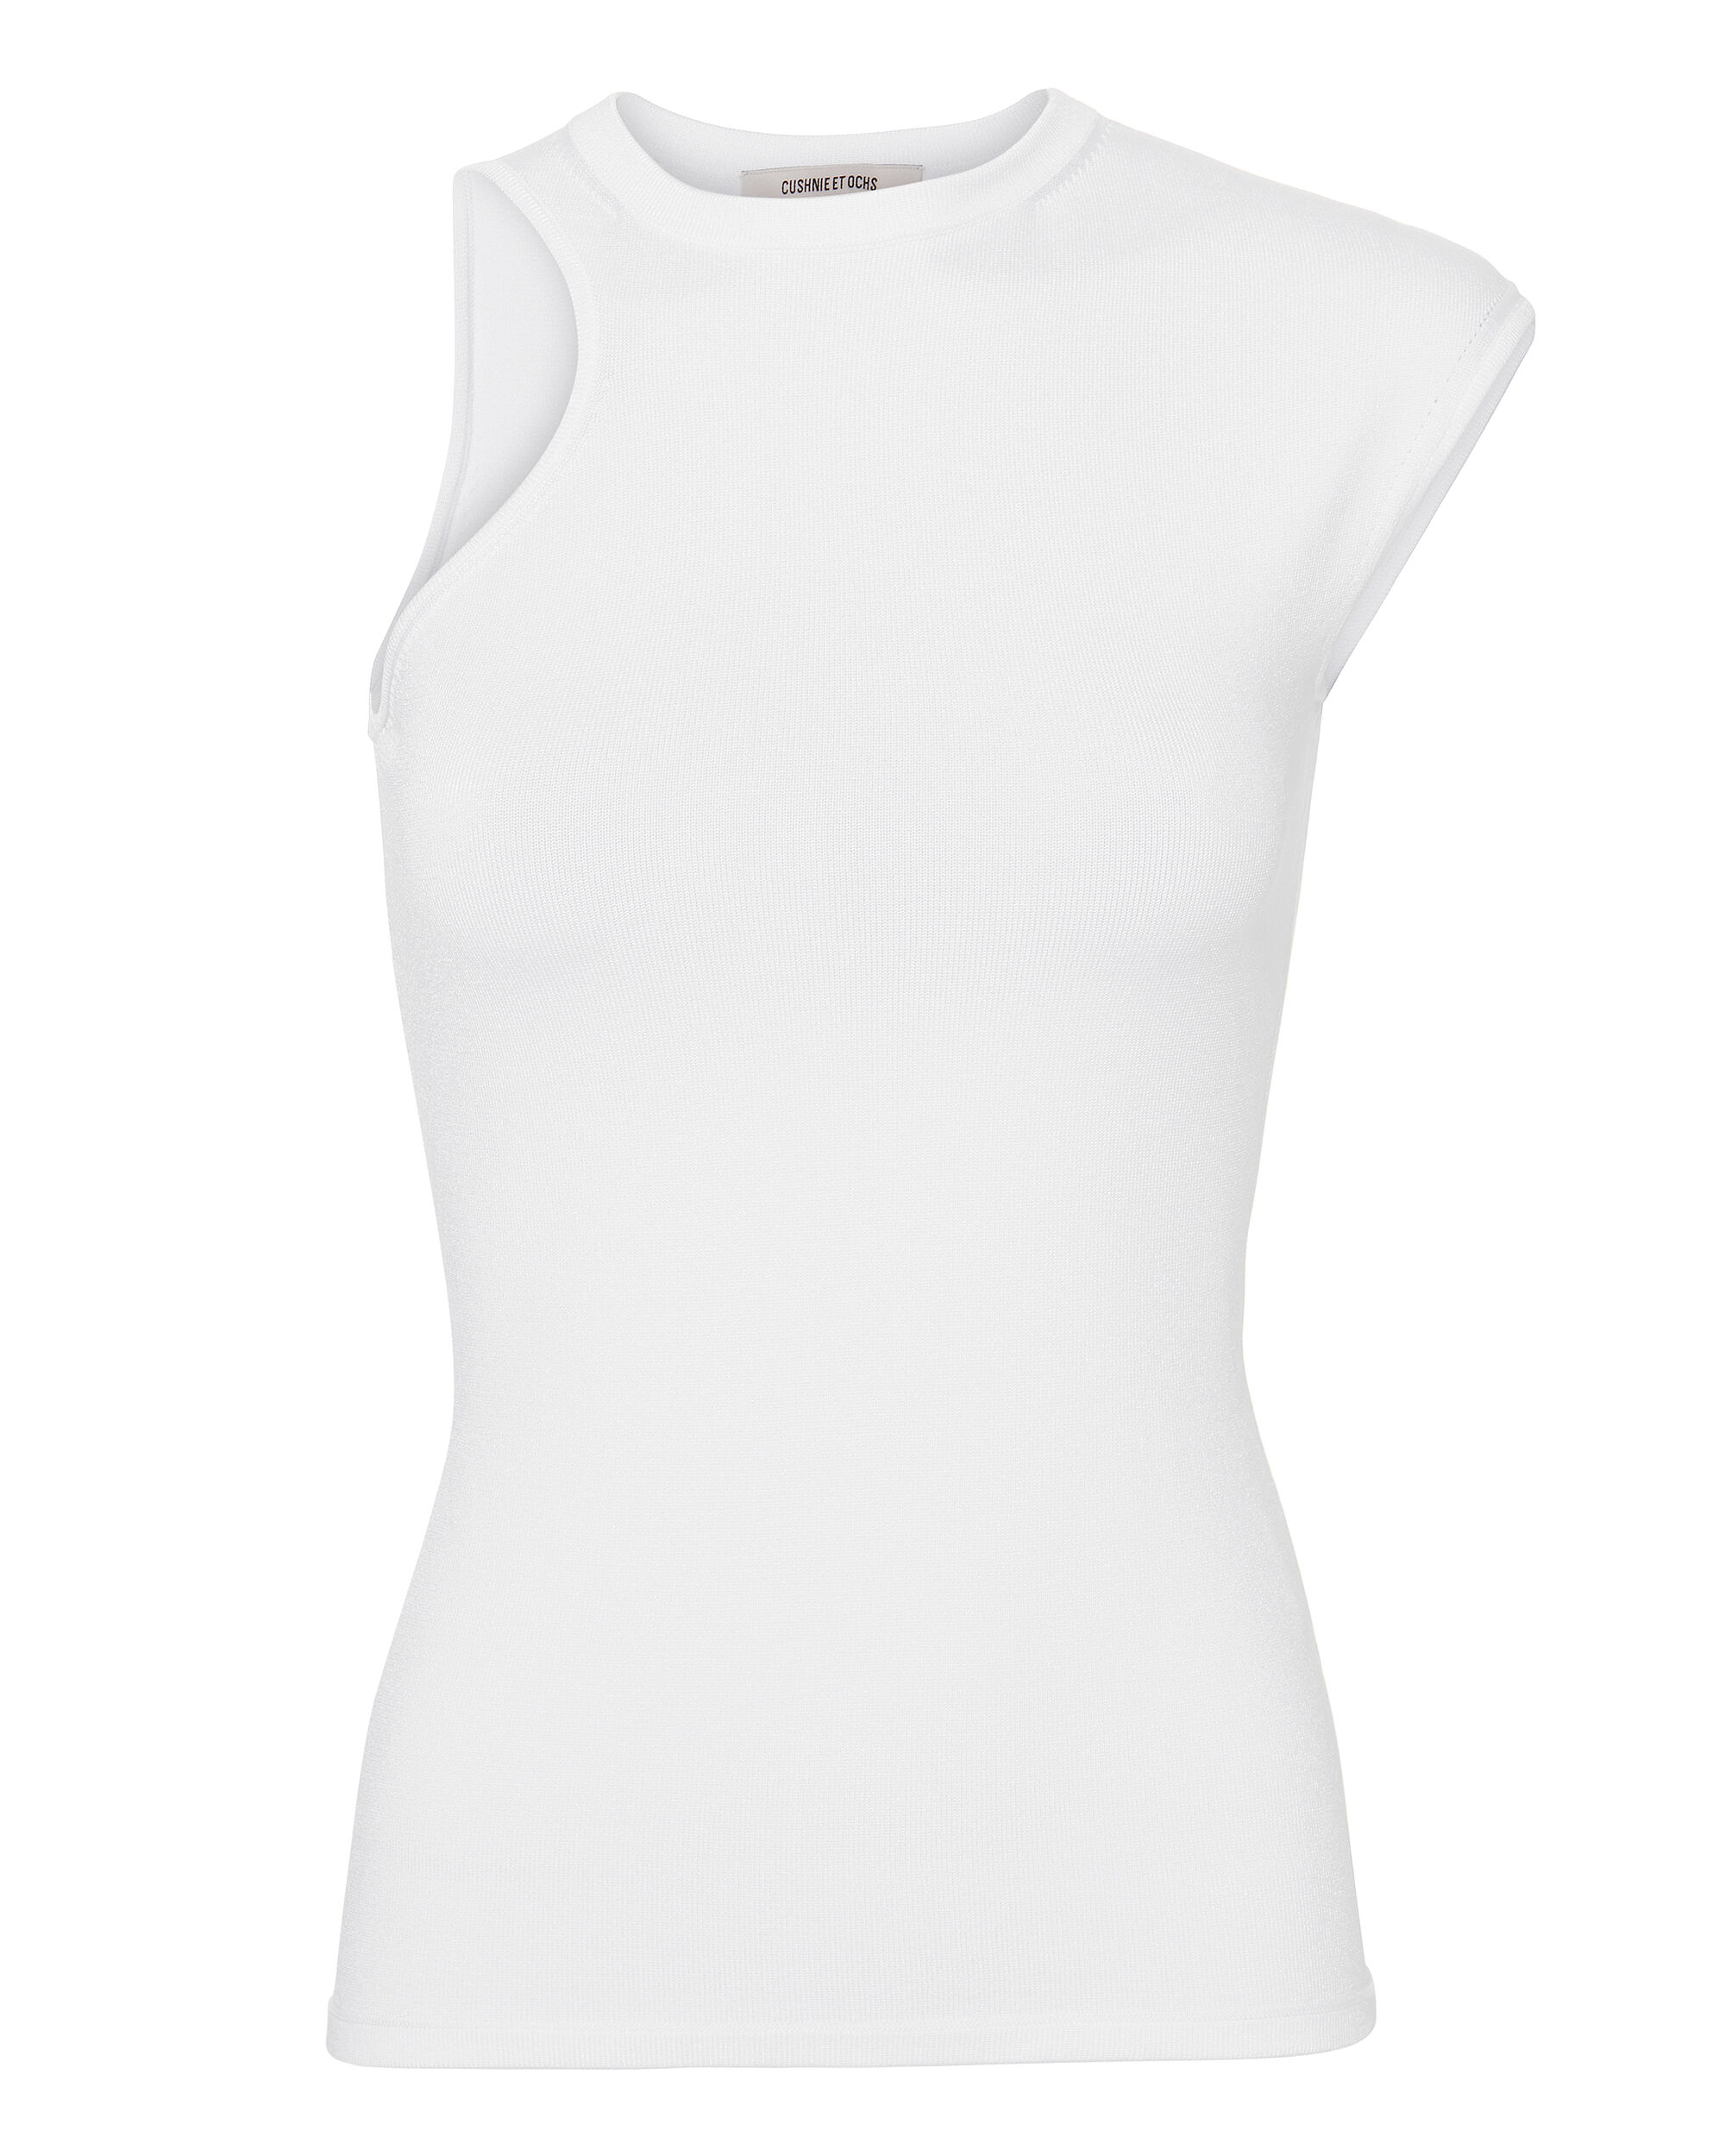 Amata Cutout White Top, WHITE, hi-res